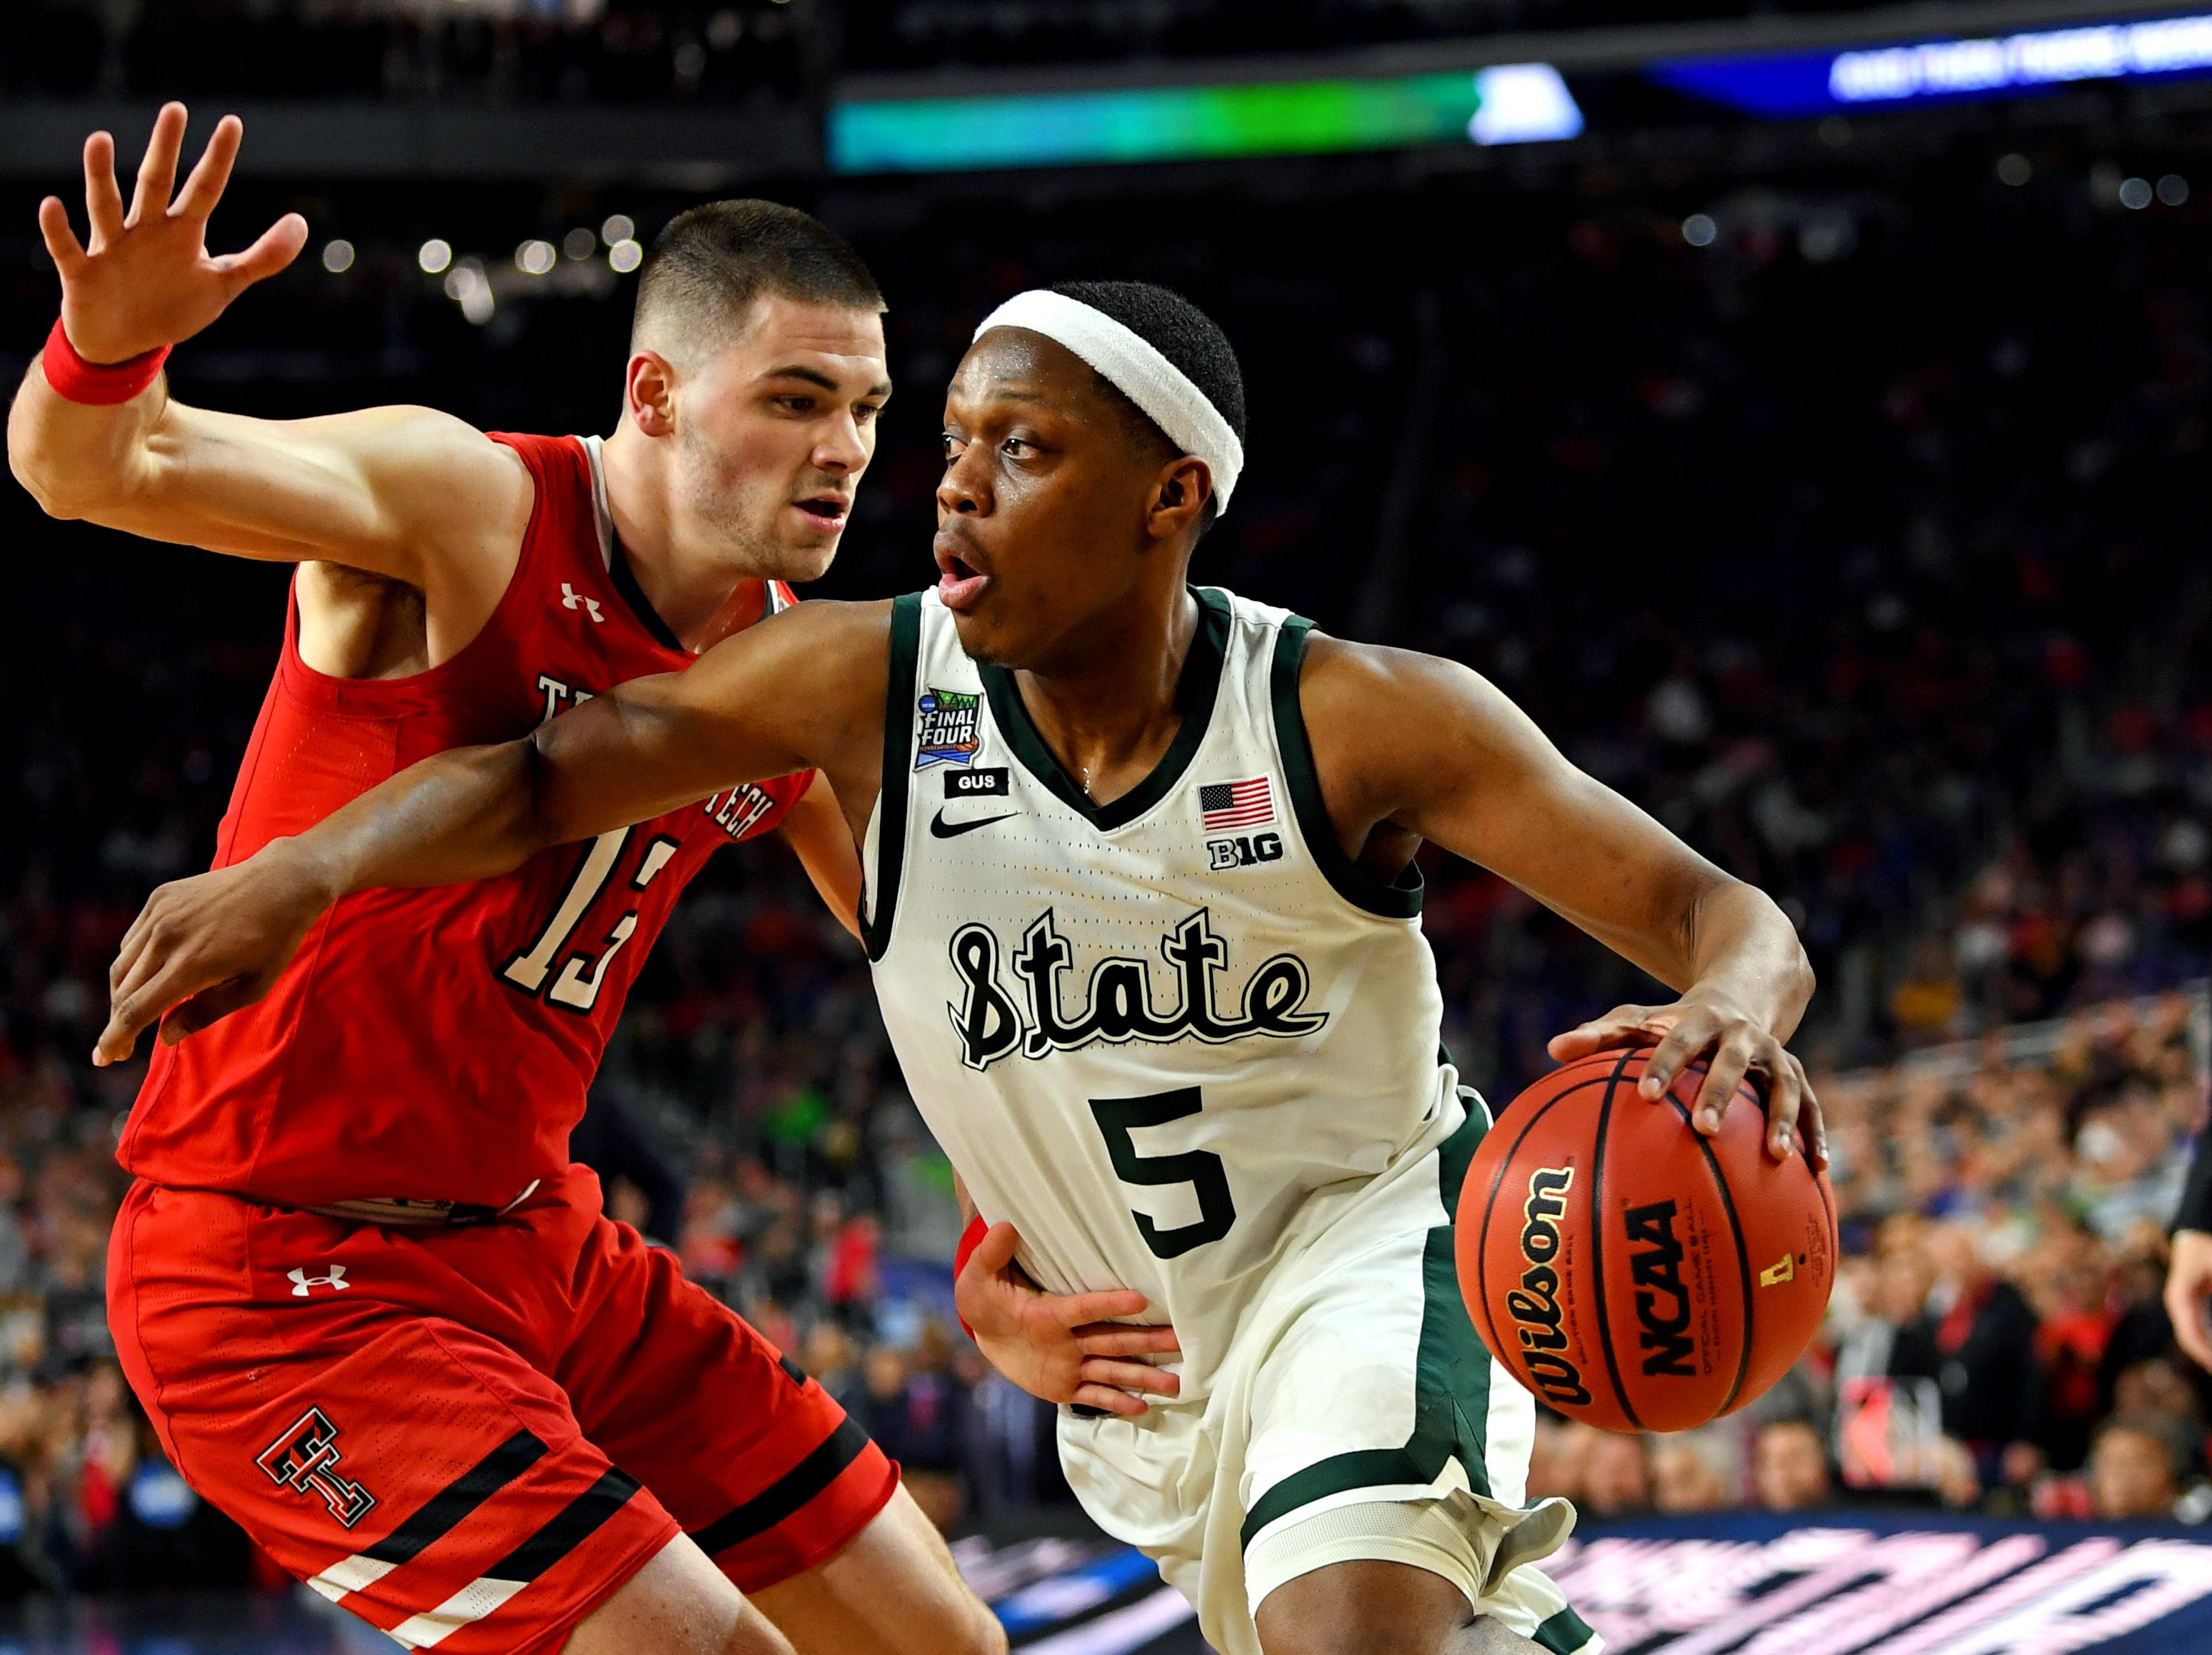 Apr 6, 2019; Minneapolis, MN, USA; Michigan State Spartans guard Cassius Winston (5) drives to the basket against Texas Tech Red Raiders guard Matt Mooney (13) during the second half in the semifinals of the 2019 men's Final Four at US Bank Stadium. Mandatory Credit: Bob Donnan-USA TODAY Sports